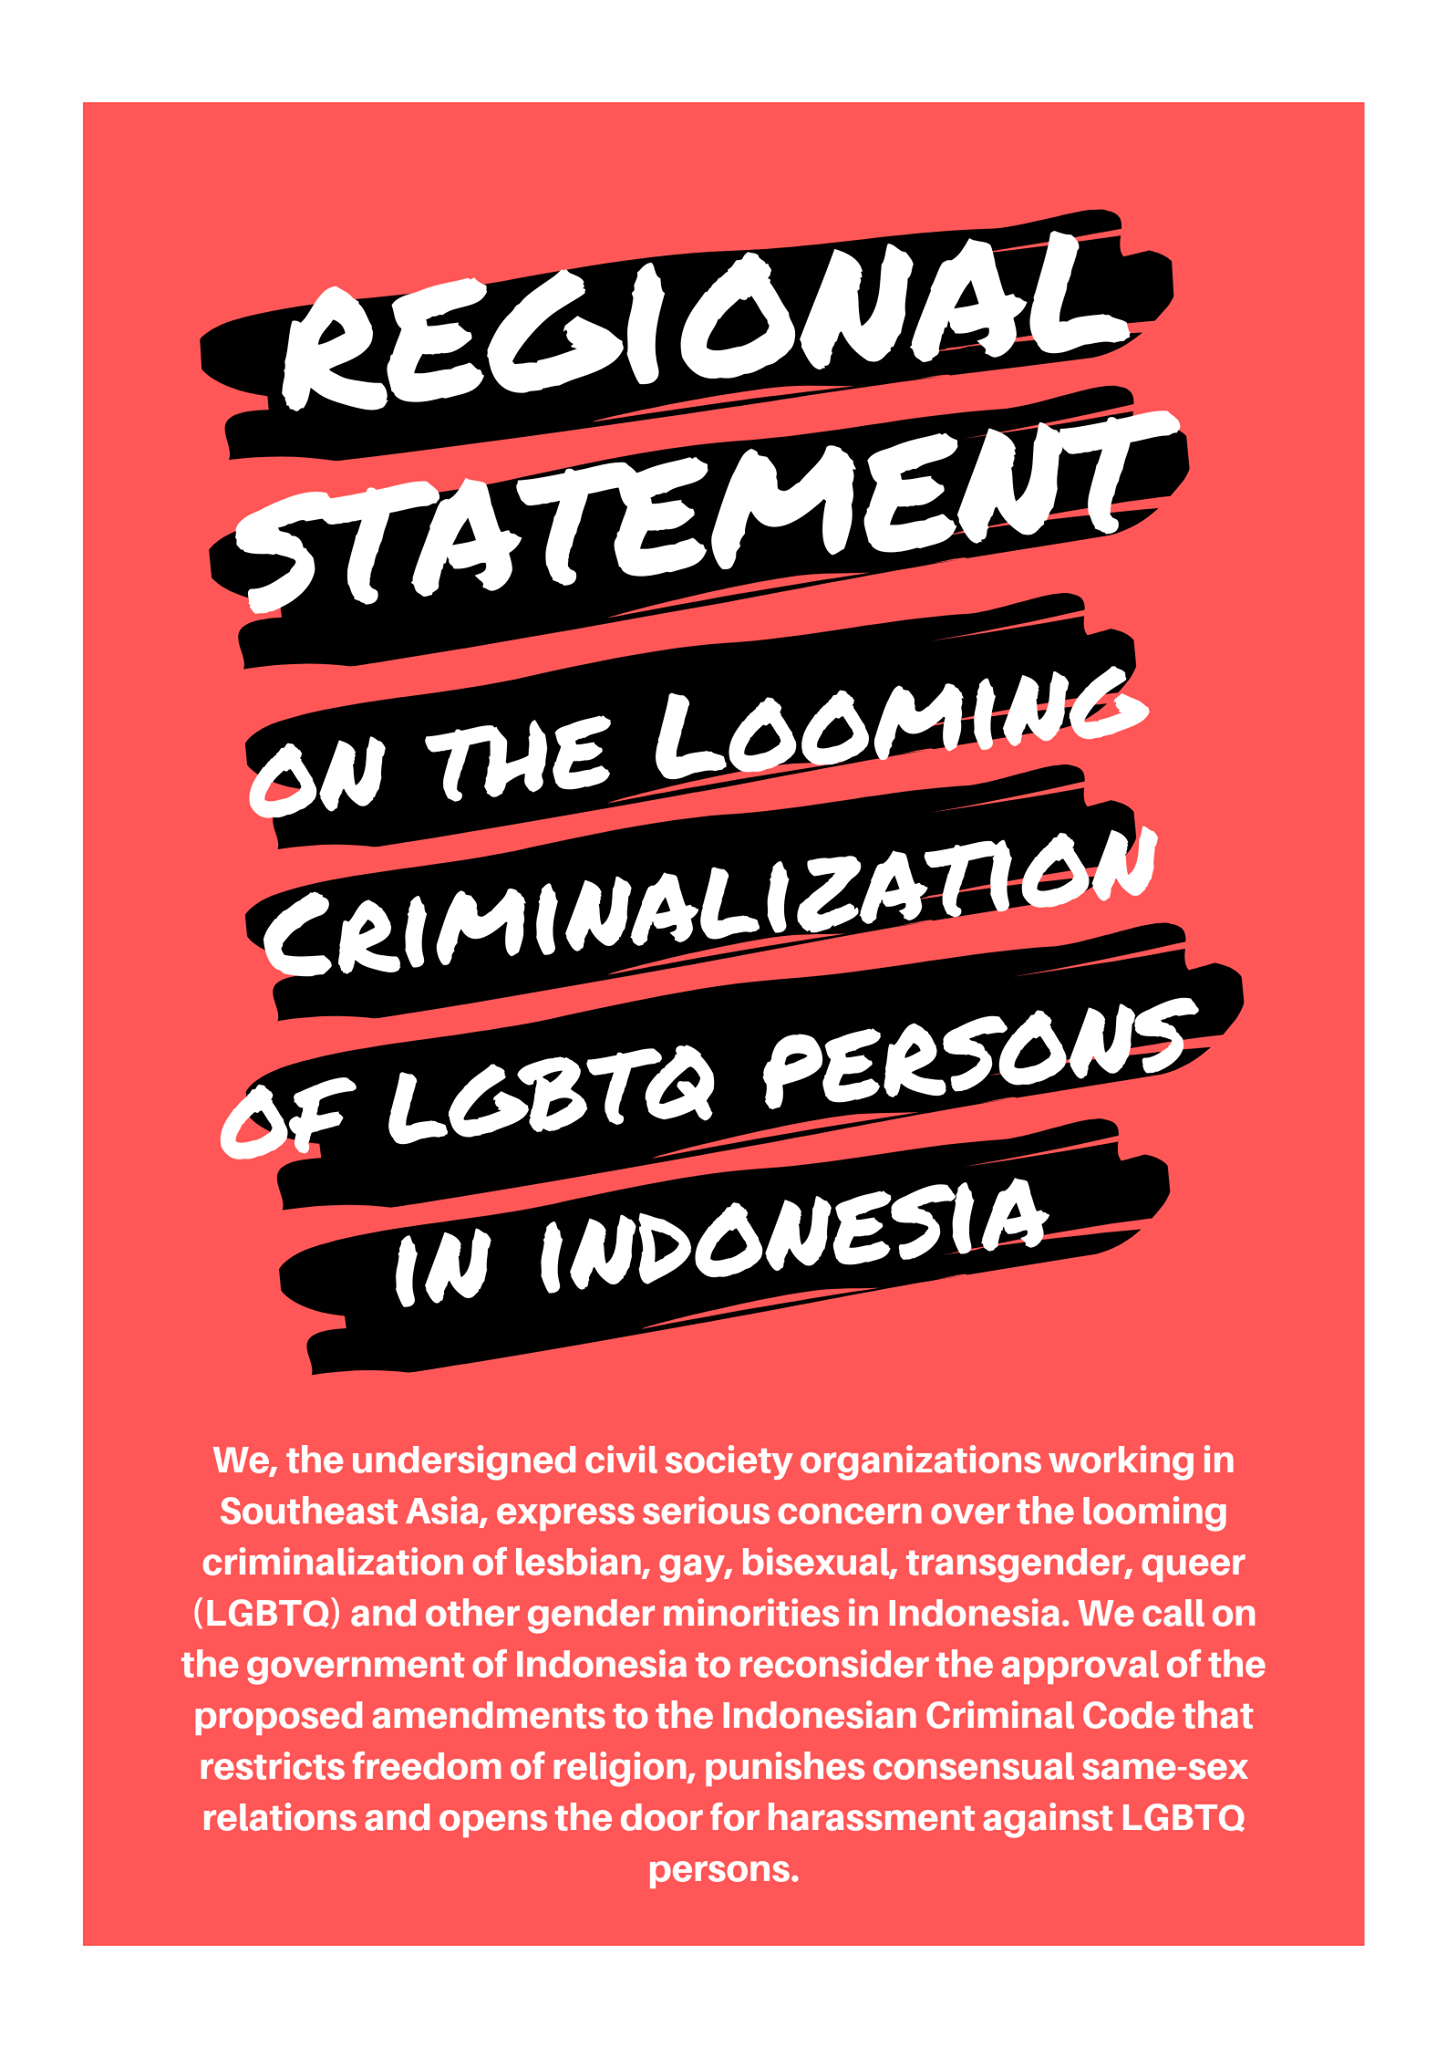 20190920 regional statement indeonesia text